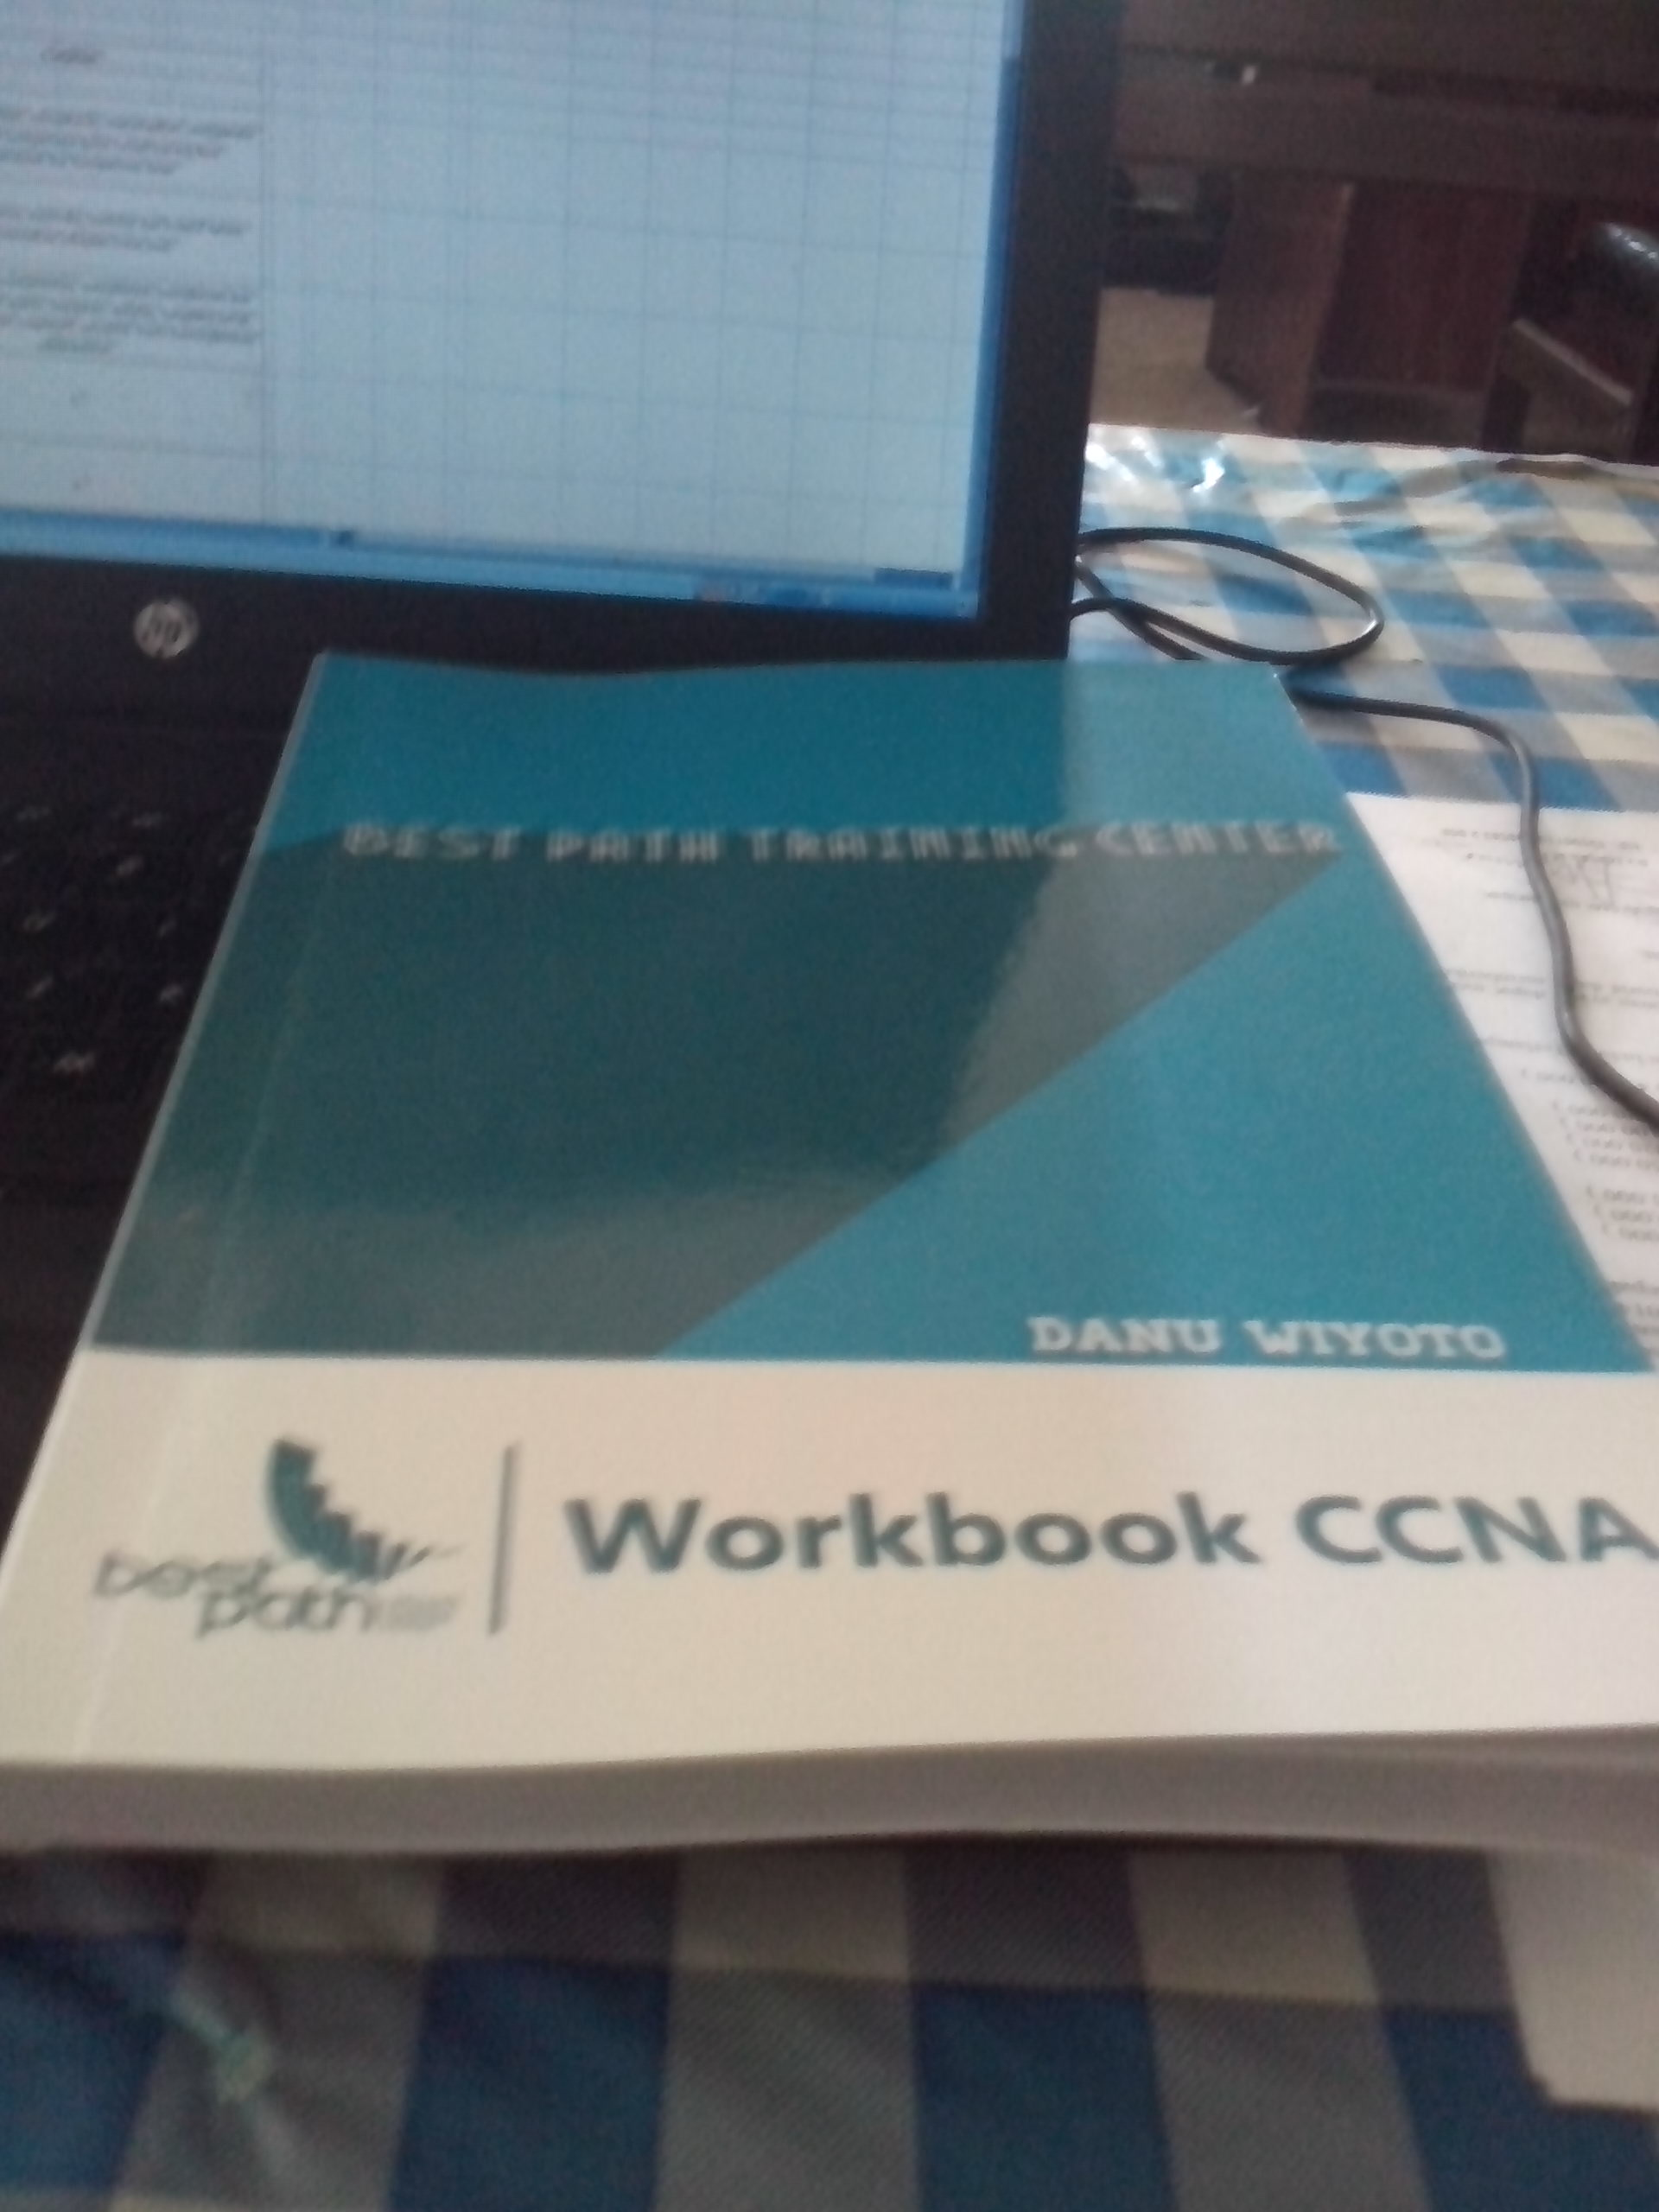 buku belajar cisco workbook ccna best path